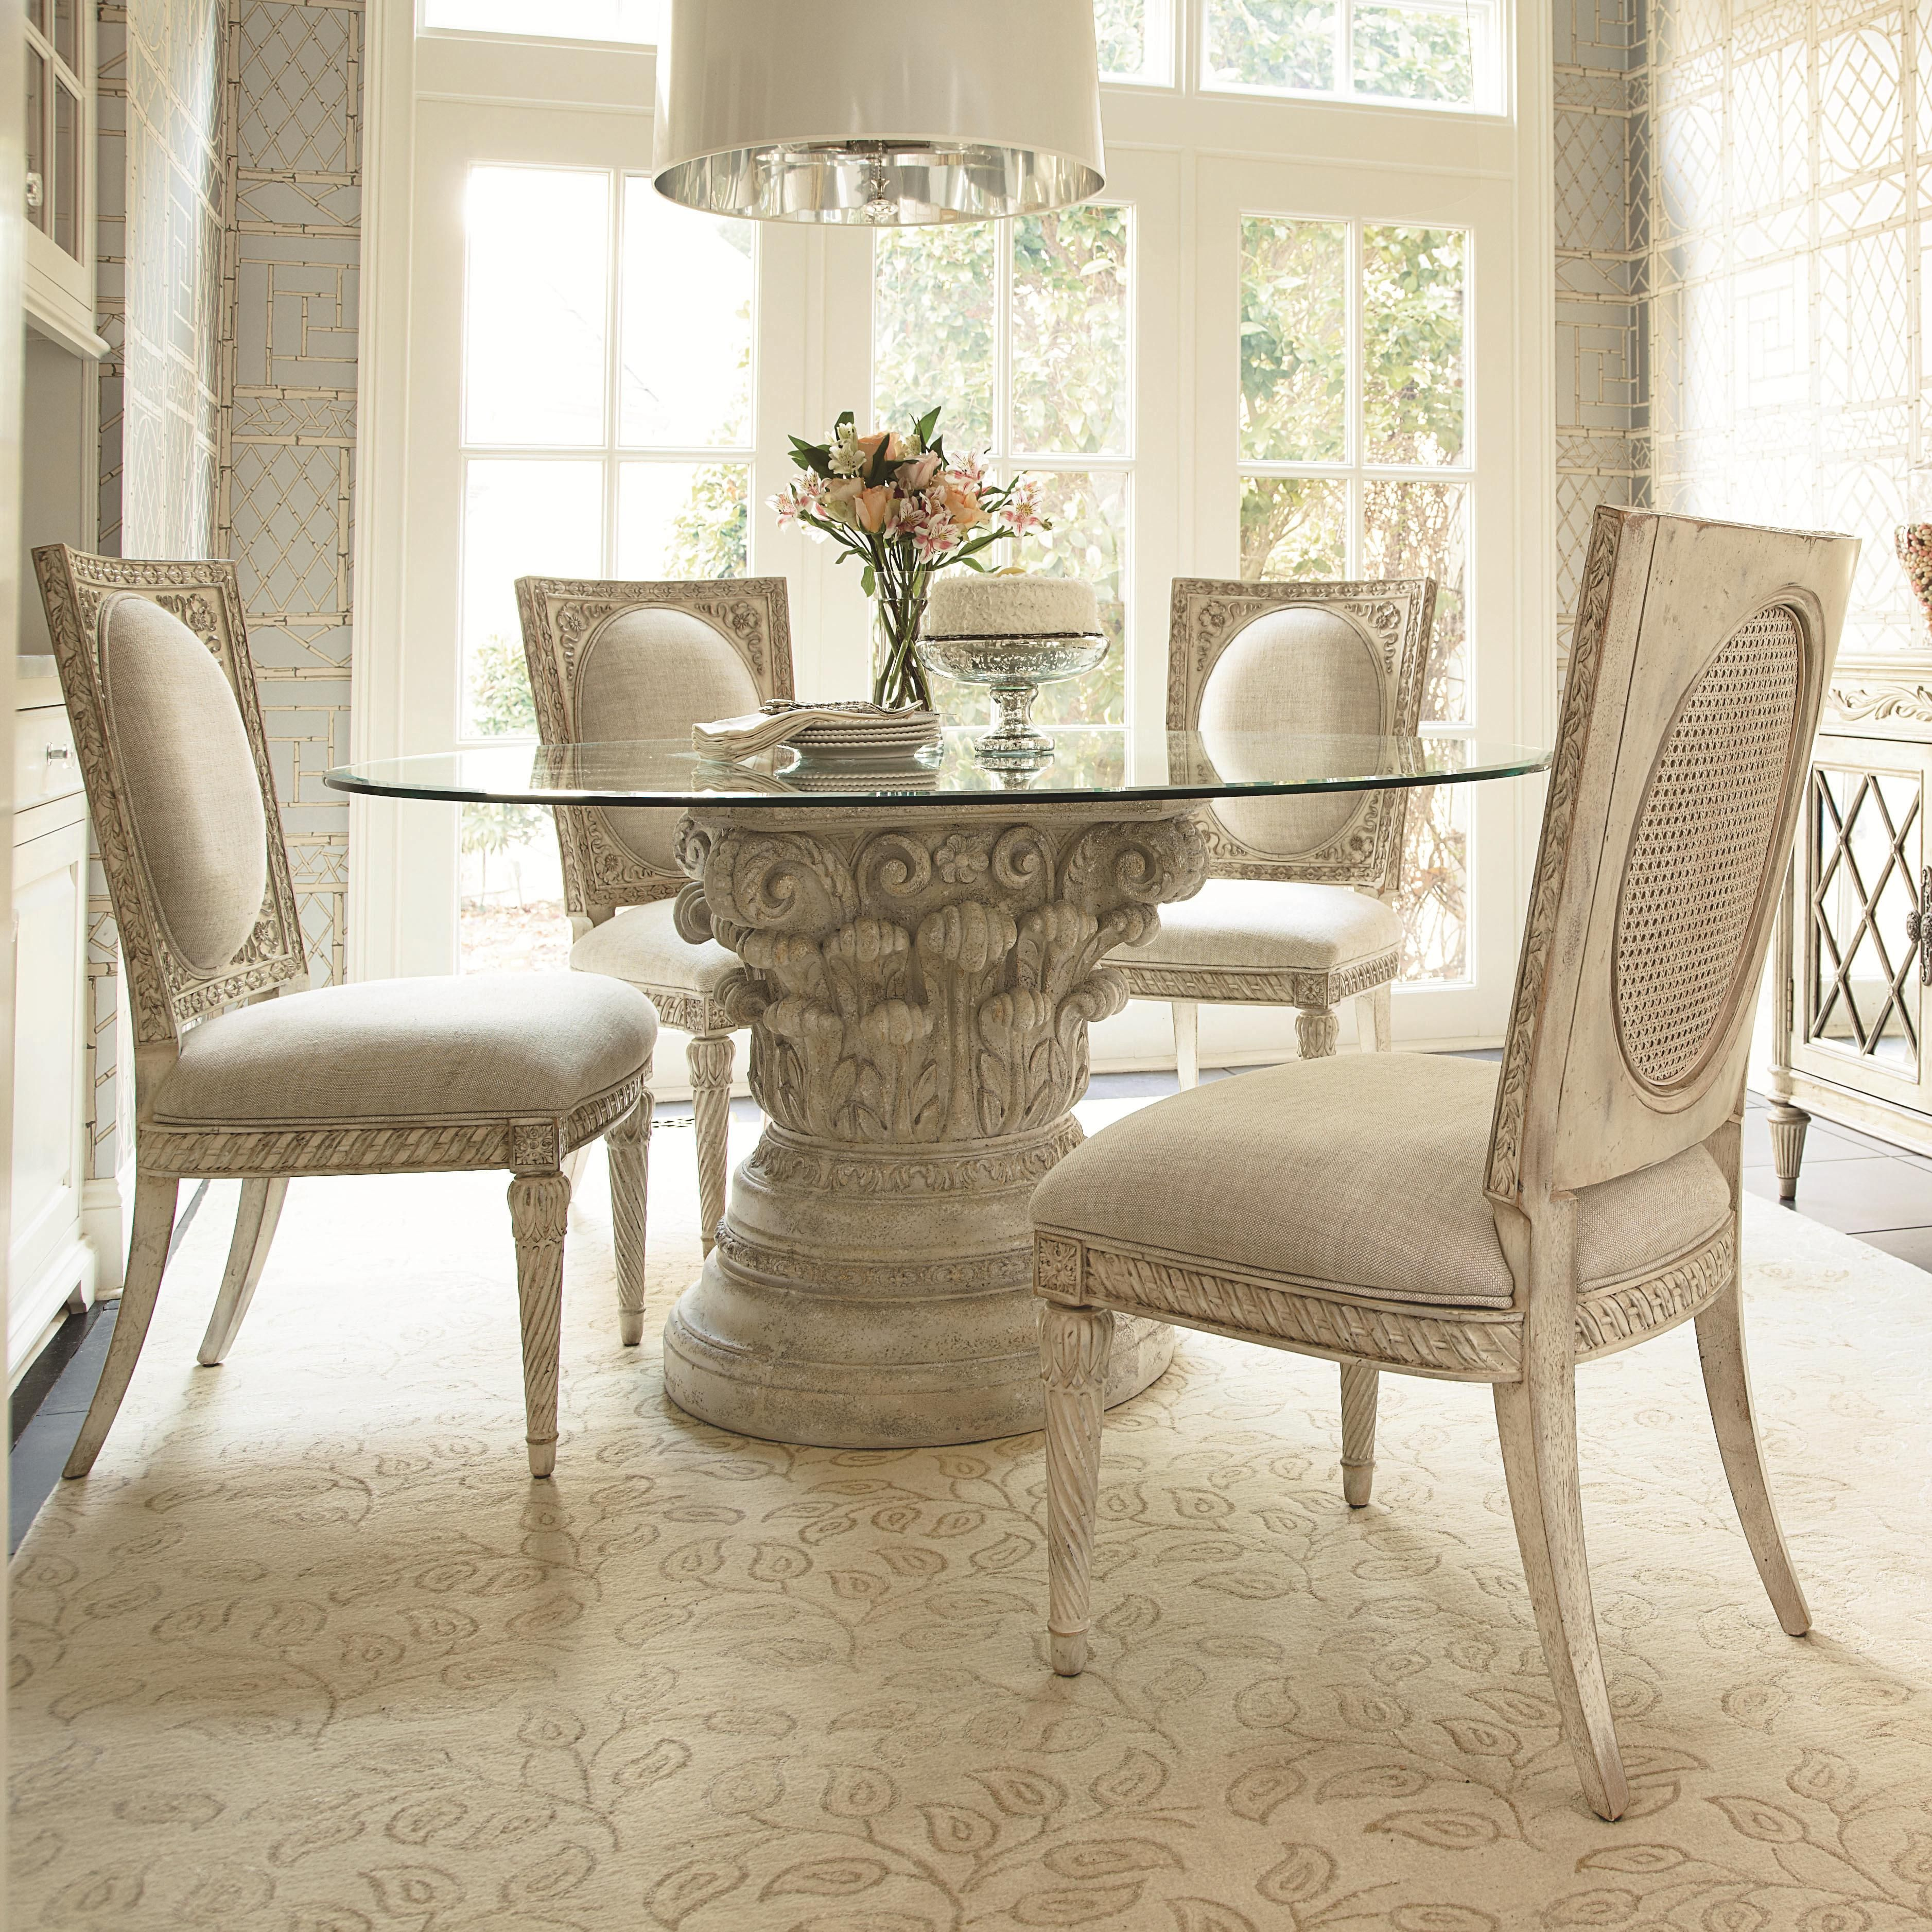 Antique glass dining table - Jessica Mcclintock Home The Boutique Collection 5 Piece Dining Table Set By American Drew